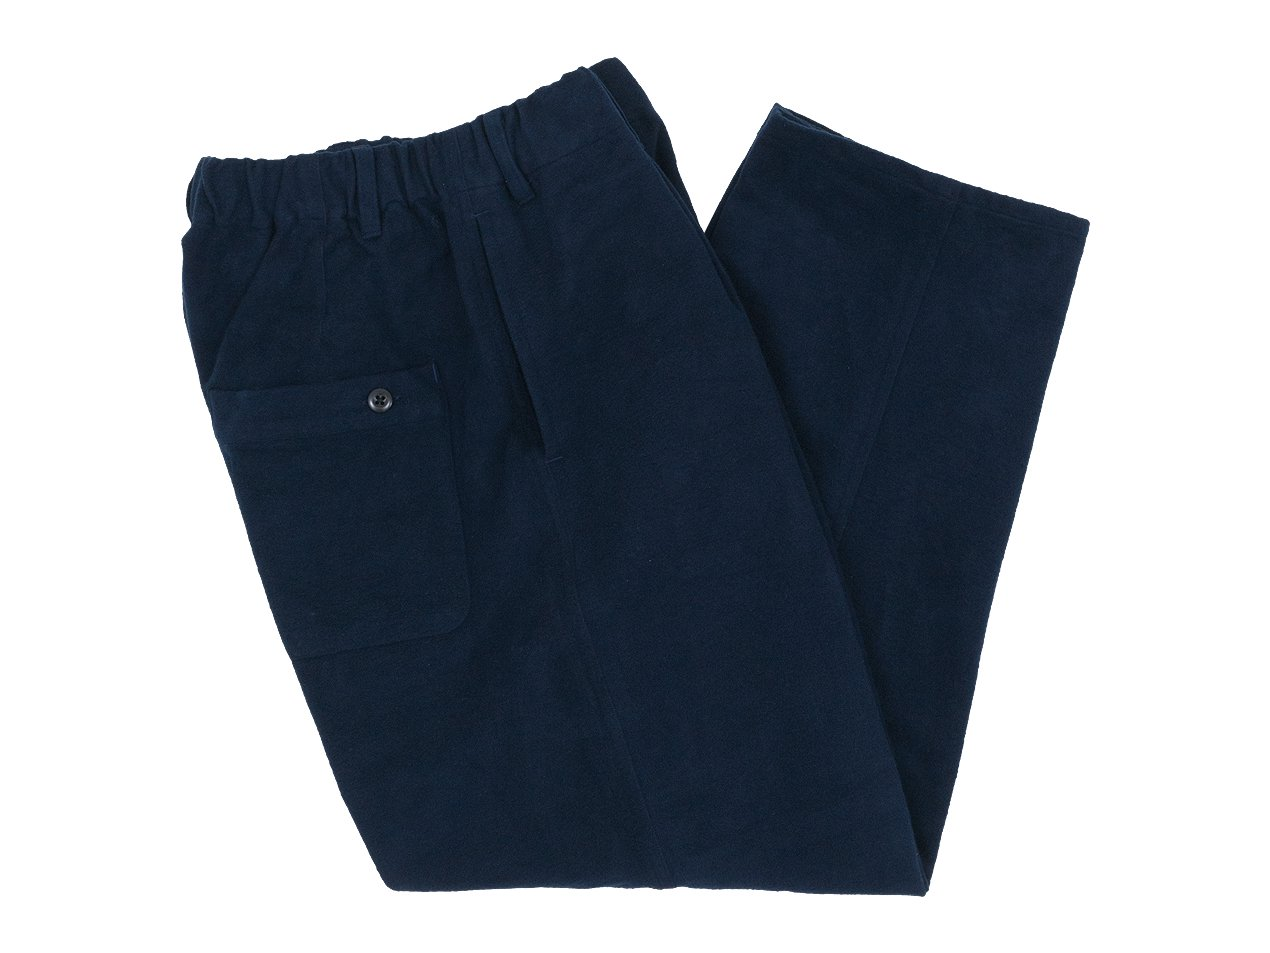 maillot mature cotton nel easy pants NAVY